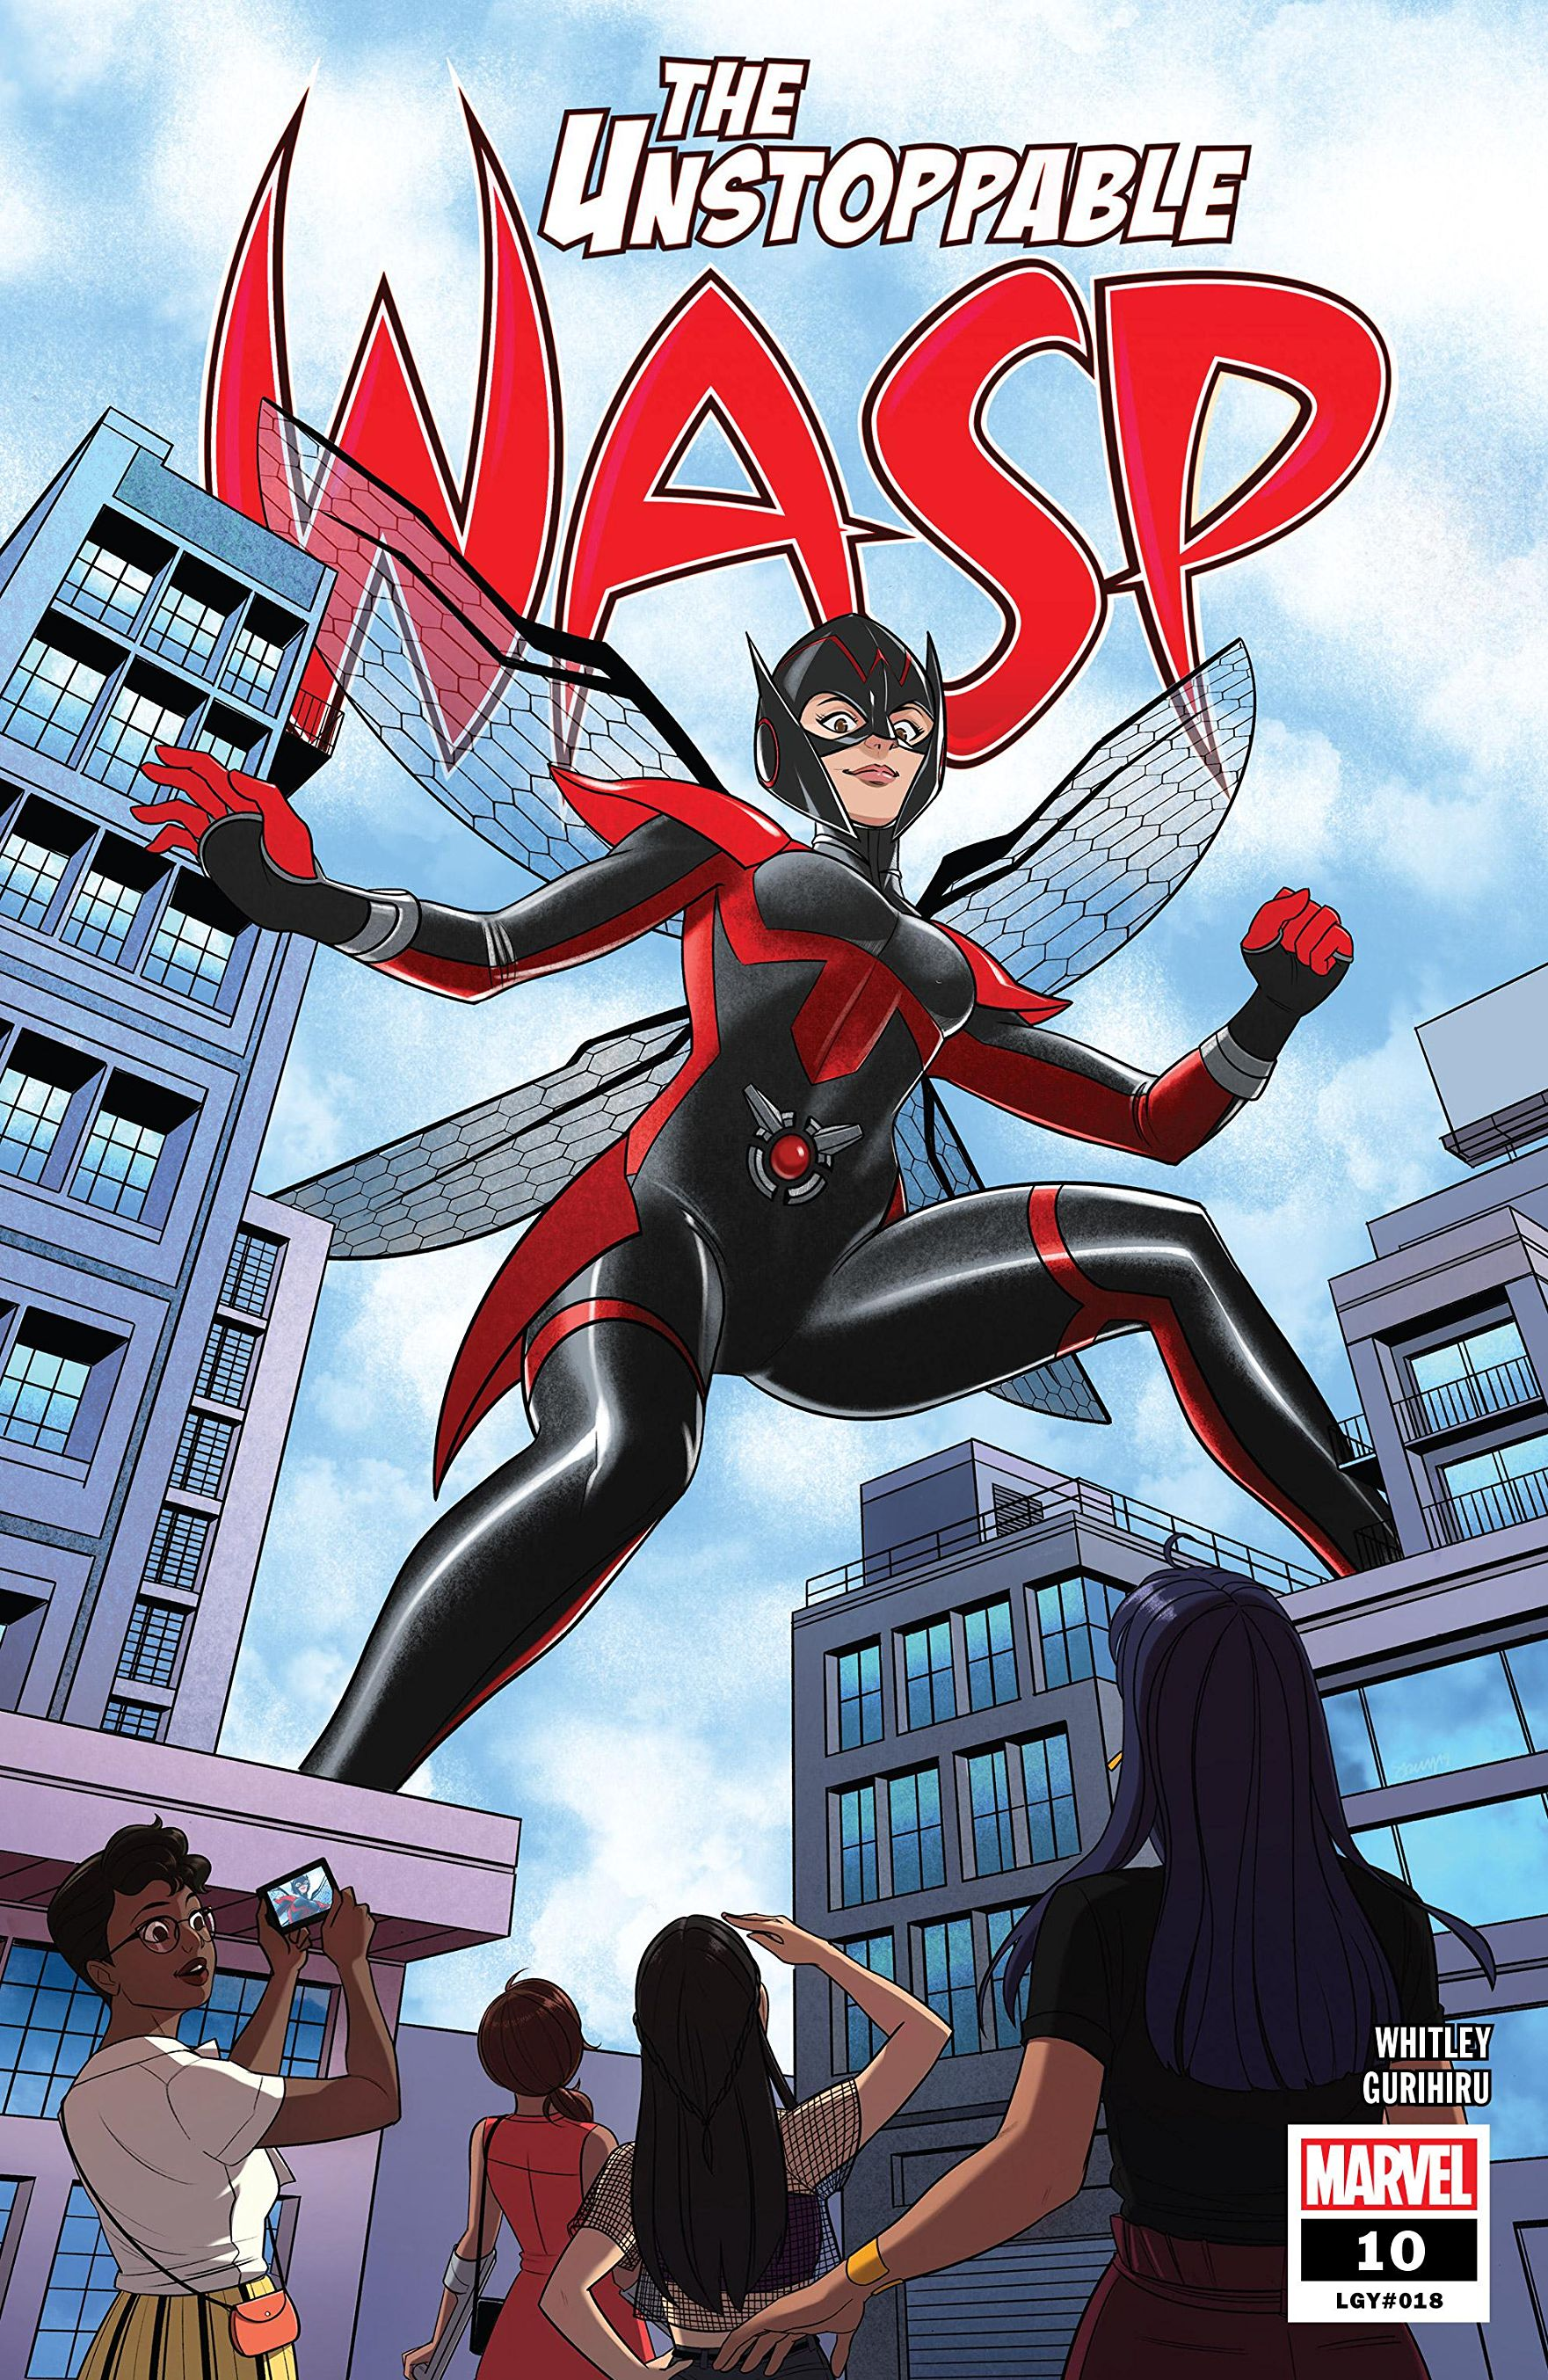 Unstoppable Wasp Vol 2 10